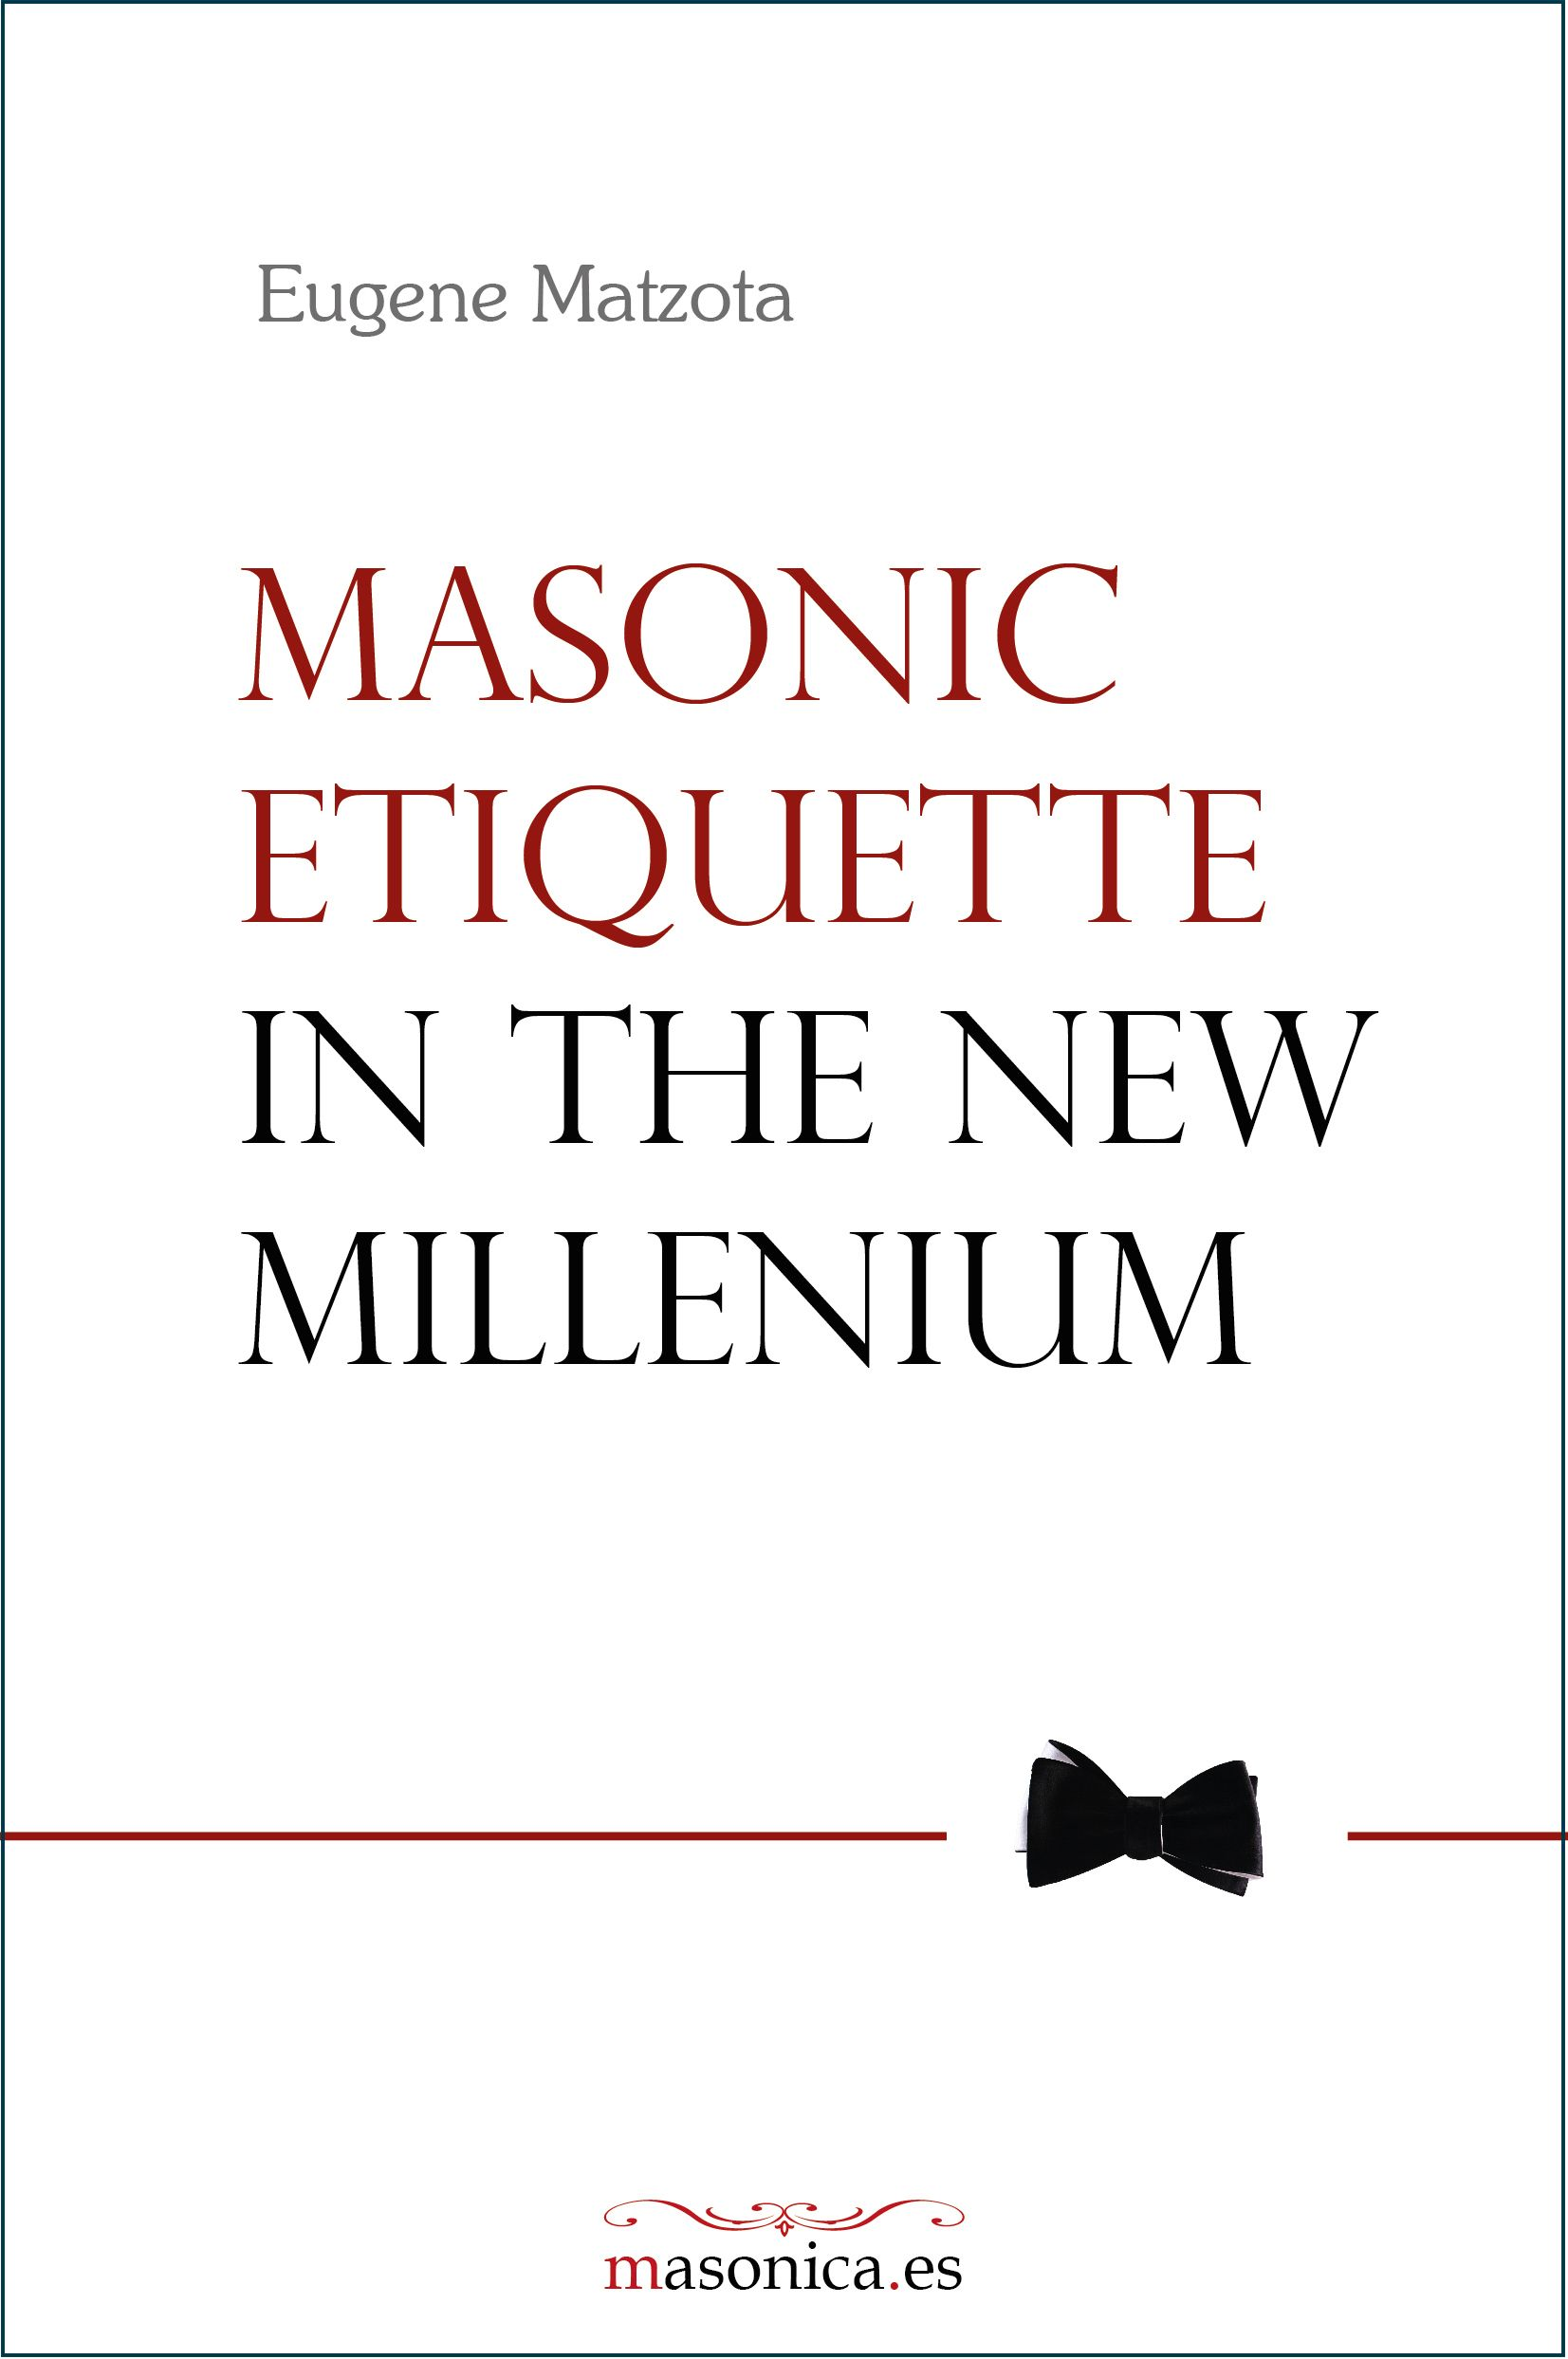 In a few words, Masonic Etiquette is a code of recommended rules and suggestions; however, we have to understand that these rules and suggestions are not laws, such as the Grand Lodges regulations, or Edicts of the Grand Master. It is good to apply Masonic Etiquette in the Masonic life, maybe much more in the profane one, in order to honor the Order, because the Mason, especially outside the Lodge, is the mirror of the Masonic Fraternity.